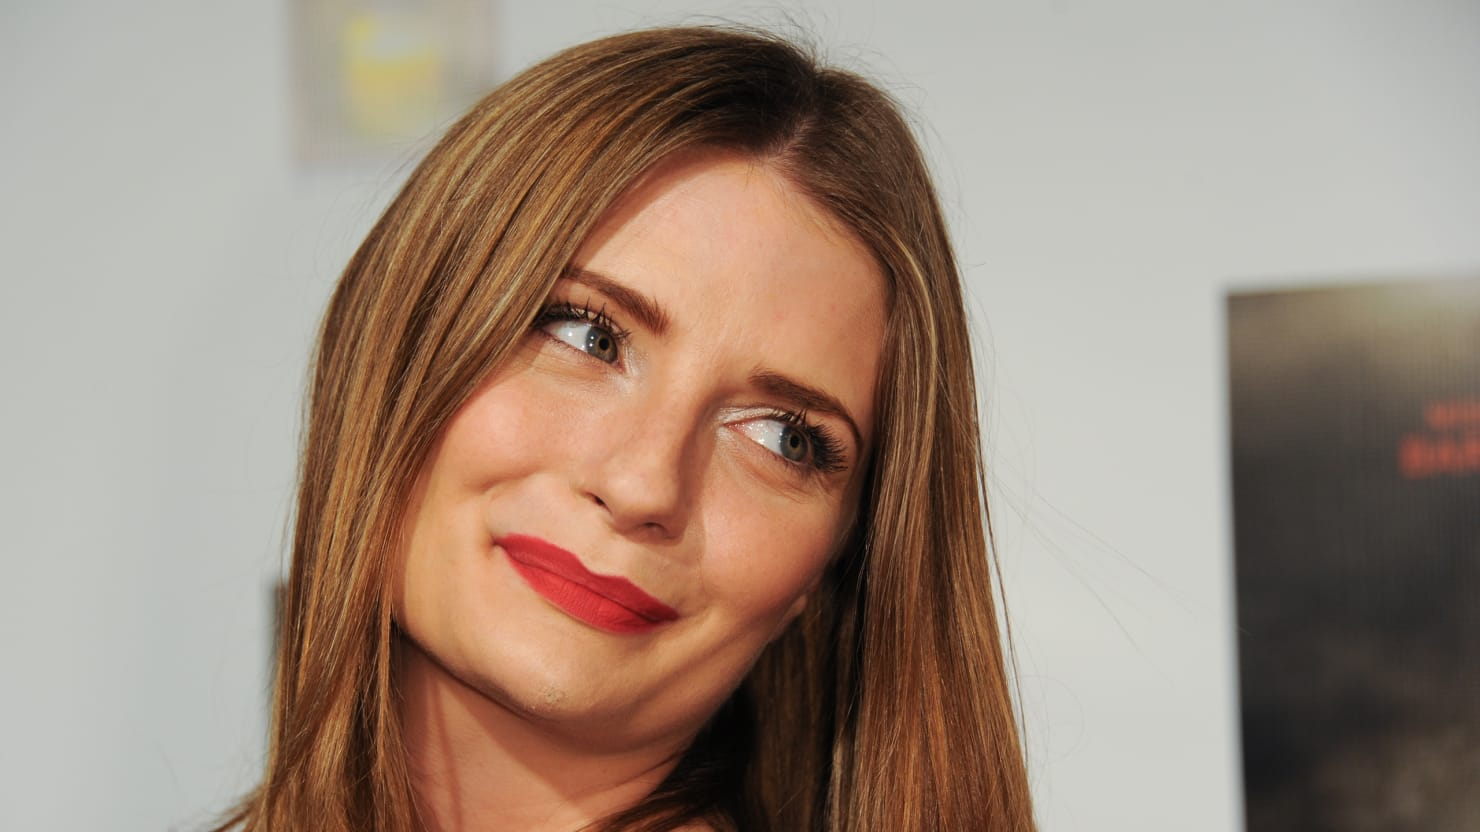 What is going on with Mischa Barton forecast